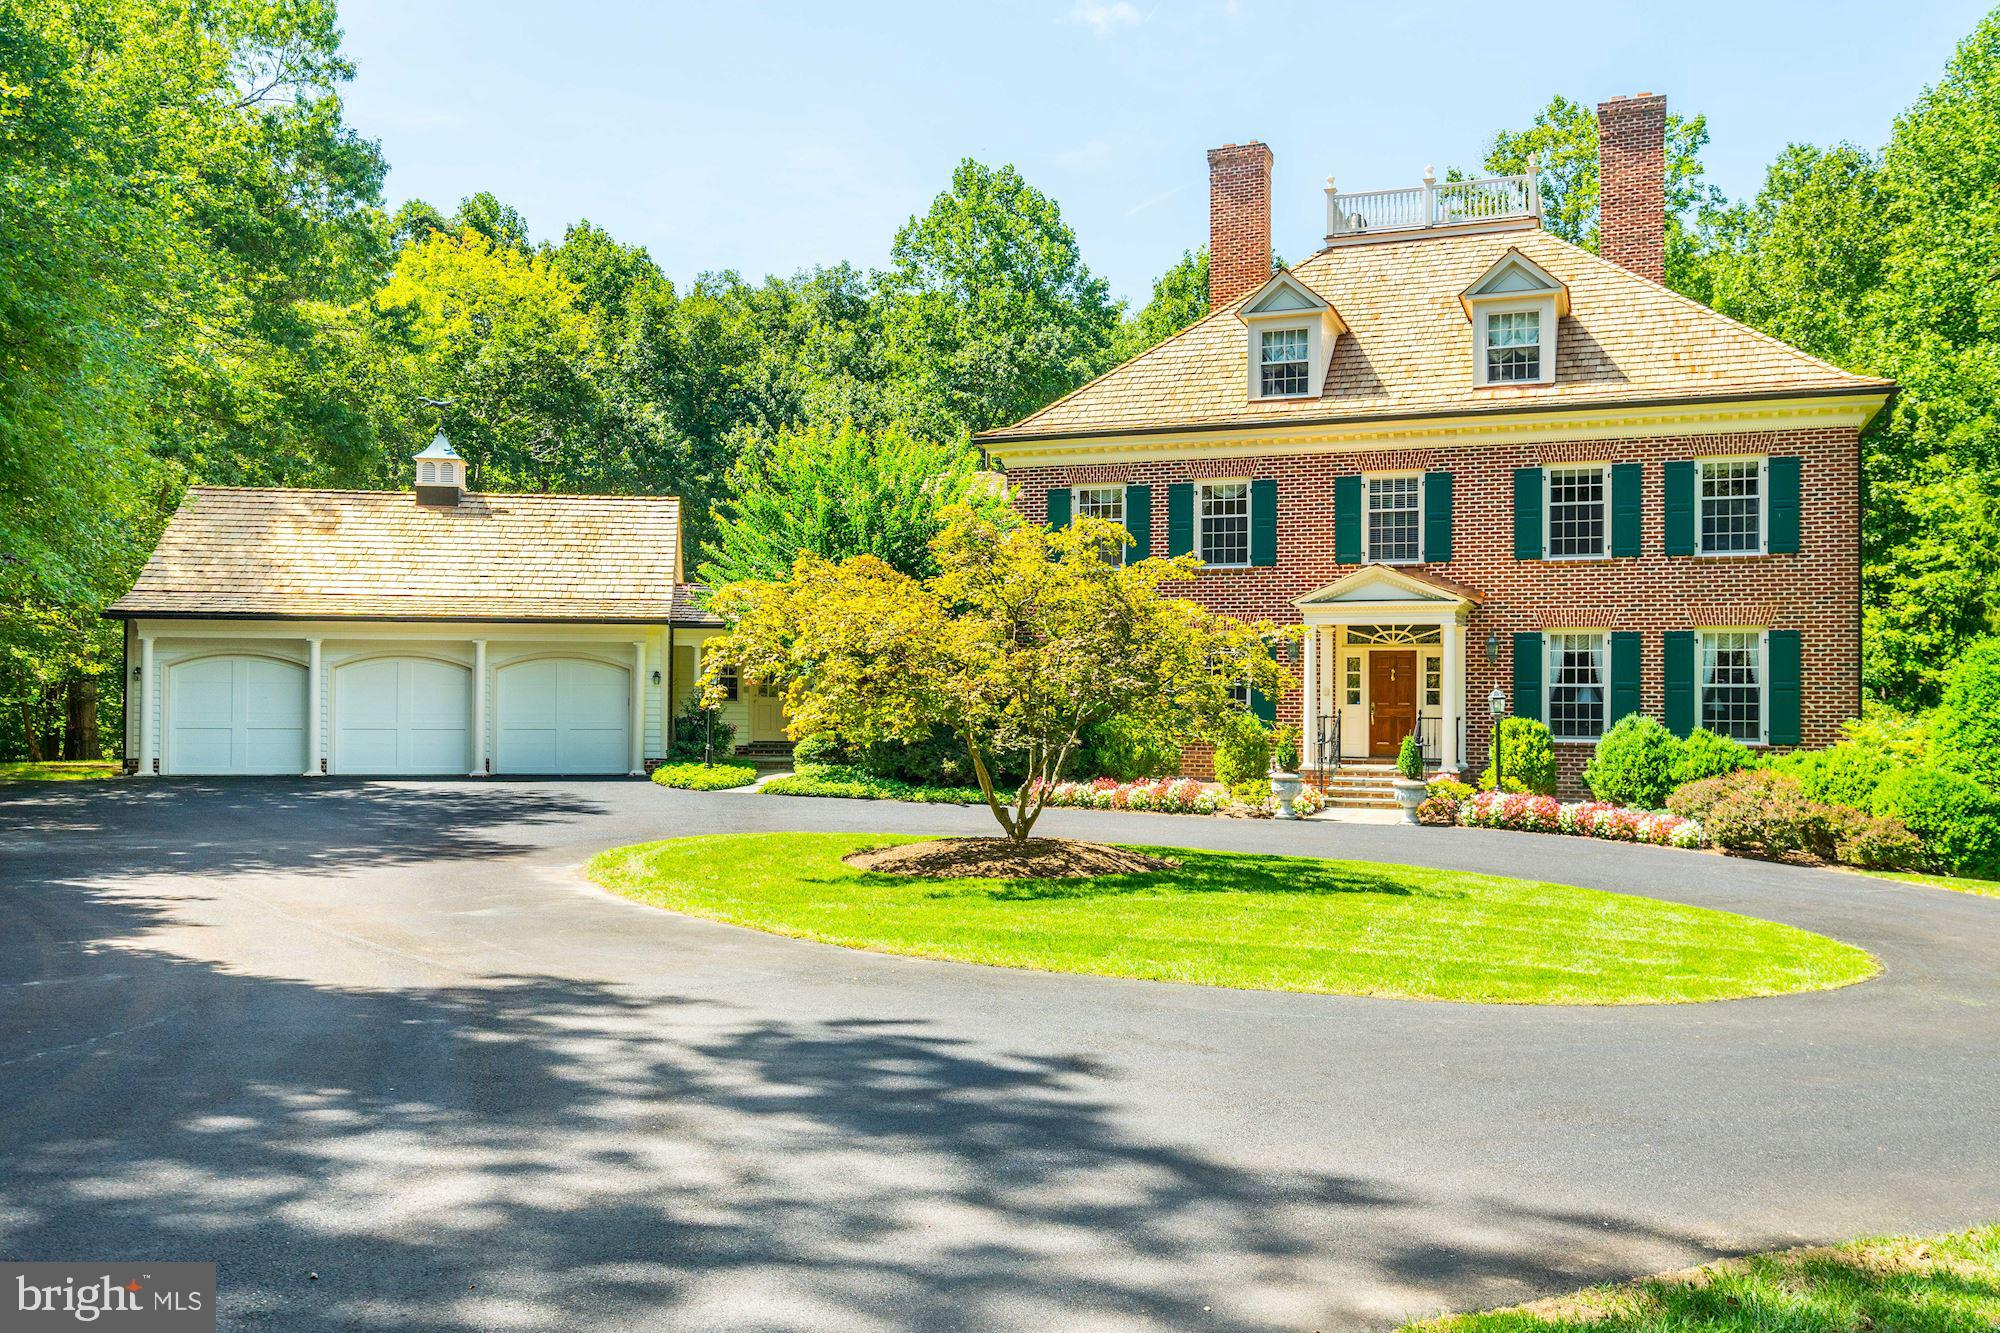 8611 COUNTRY CLUB Dr, Bethesda, MD, 20817